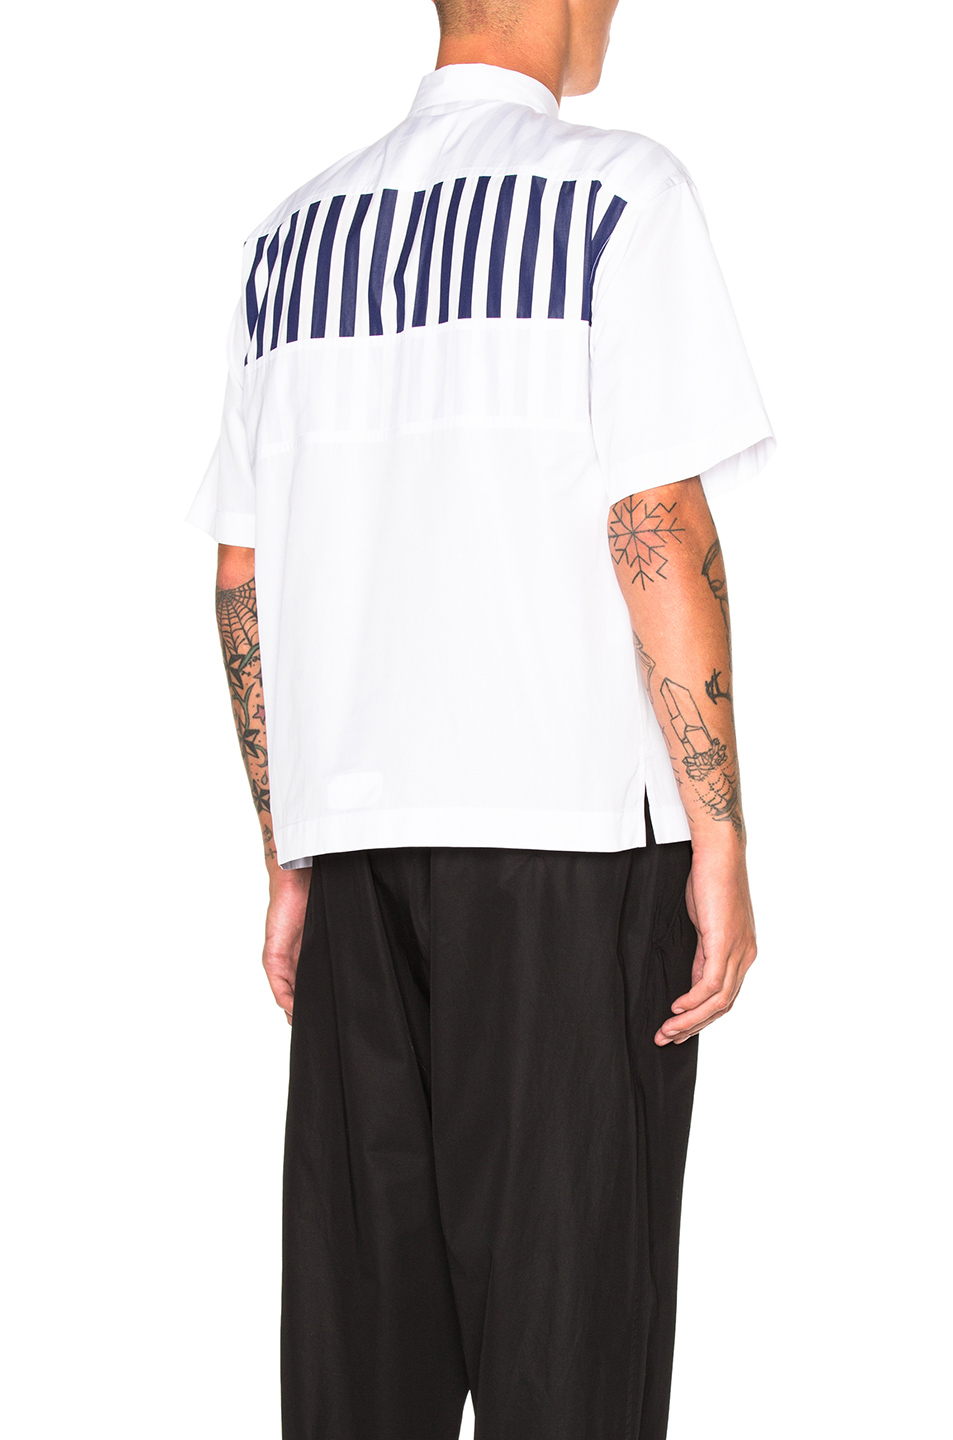 Marni Dry Twisted Cotton Shirt in White,Stripes